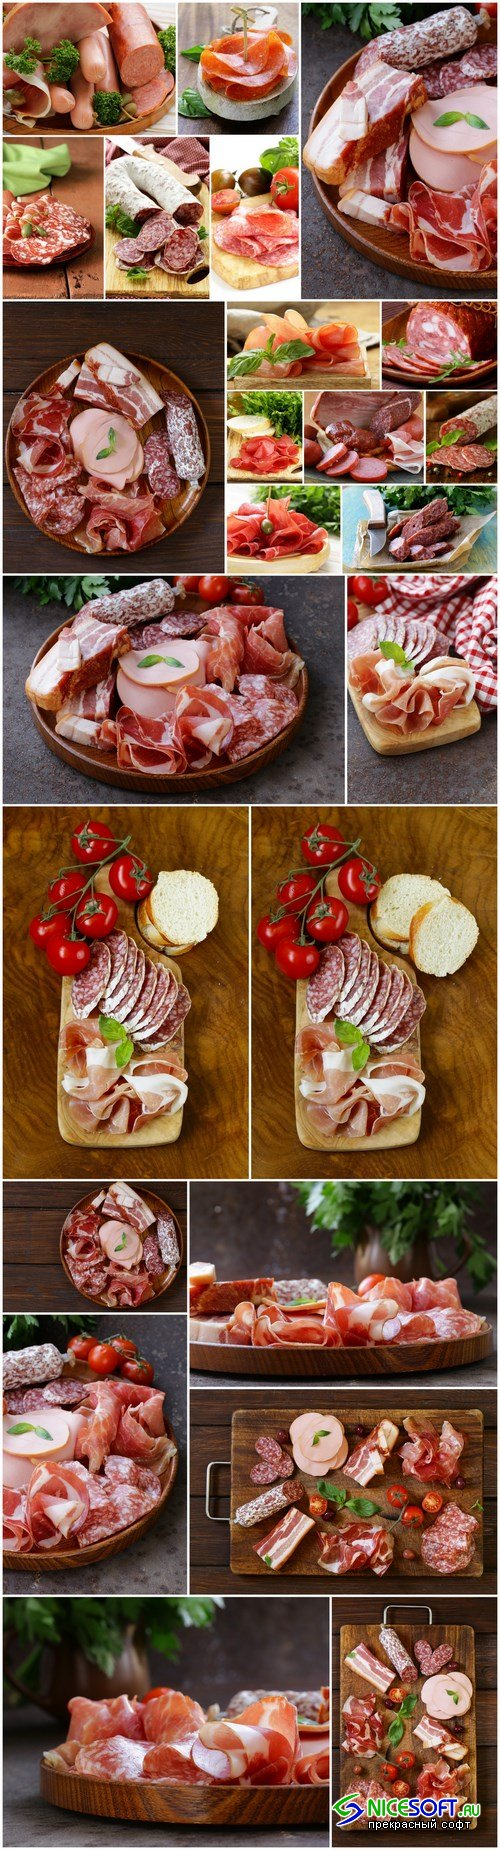 Assorted deli meats - ham, sausage, salami, parma, prosciutto, bacon - 14xUHQ JPEG Photo Stock